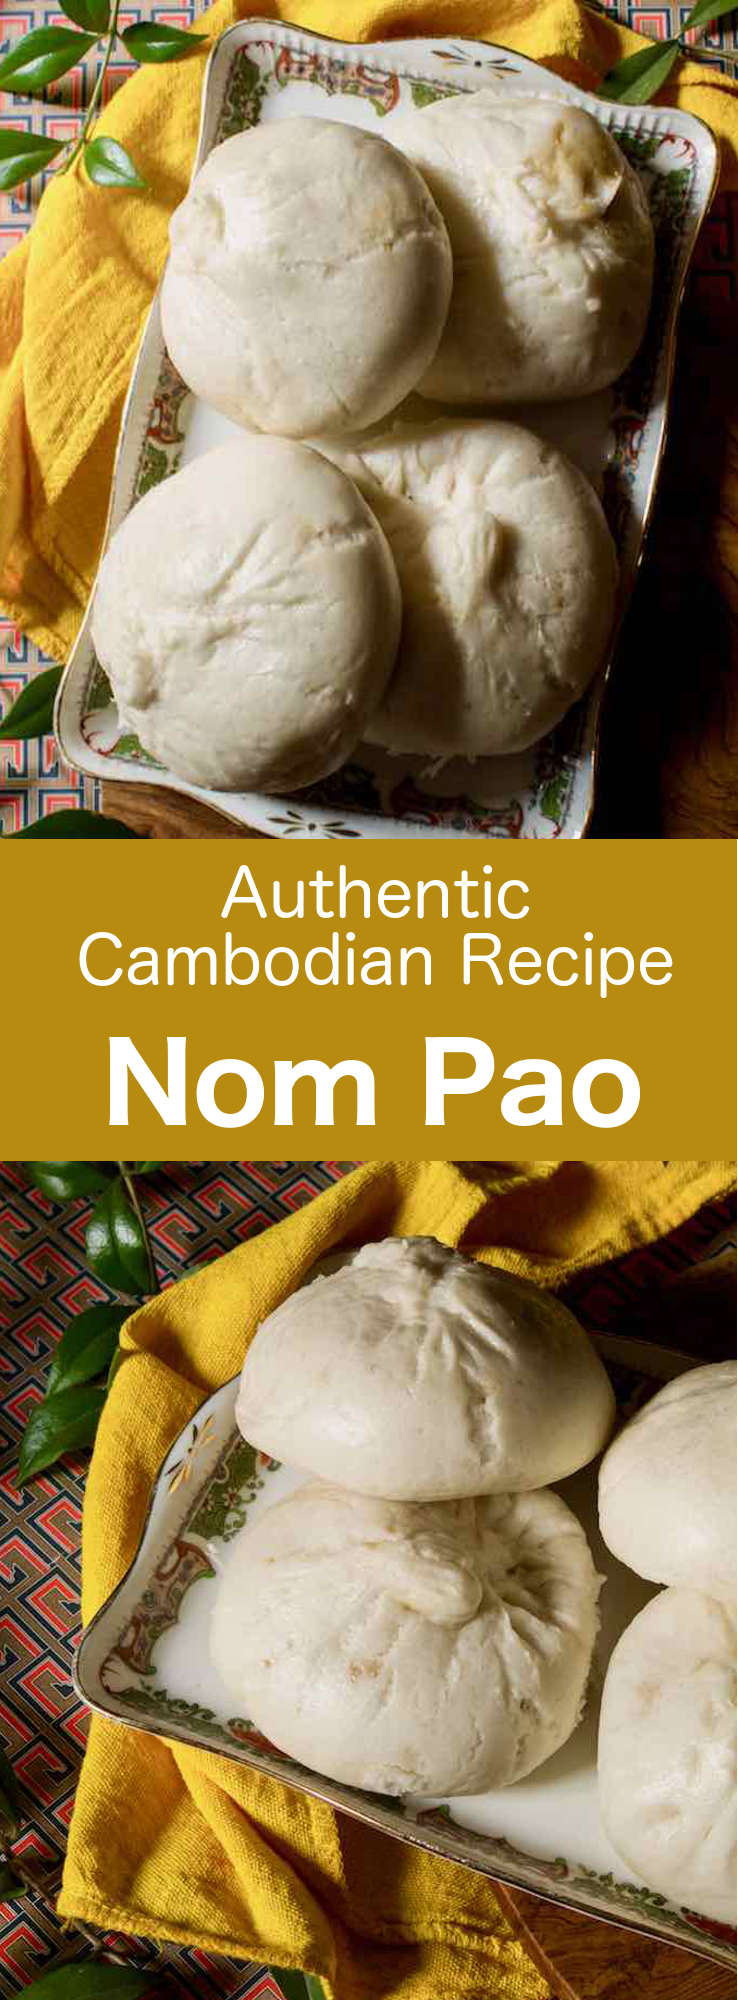 Nom pao are delicious little buns stuffed with a filling that is usually composed of meat, before being steamed. They are popular in Cambodia, as well as in the rest of South East Asia under different names. #Cambodian #CambodianRecipe #CambodianCuisine #AsianCuisine #AsianRecipe #WorldCuisine #196flavors